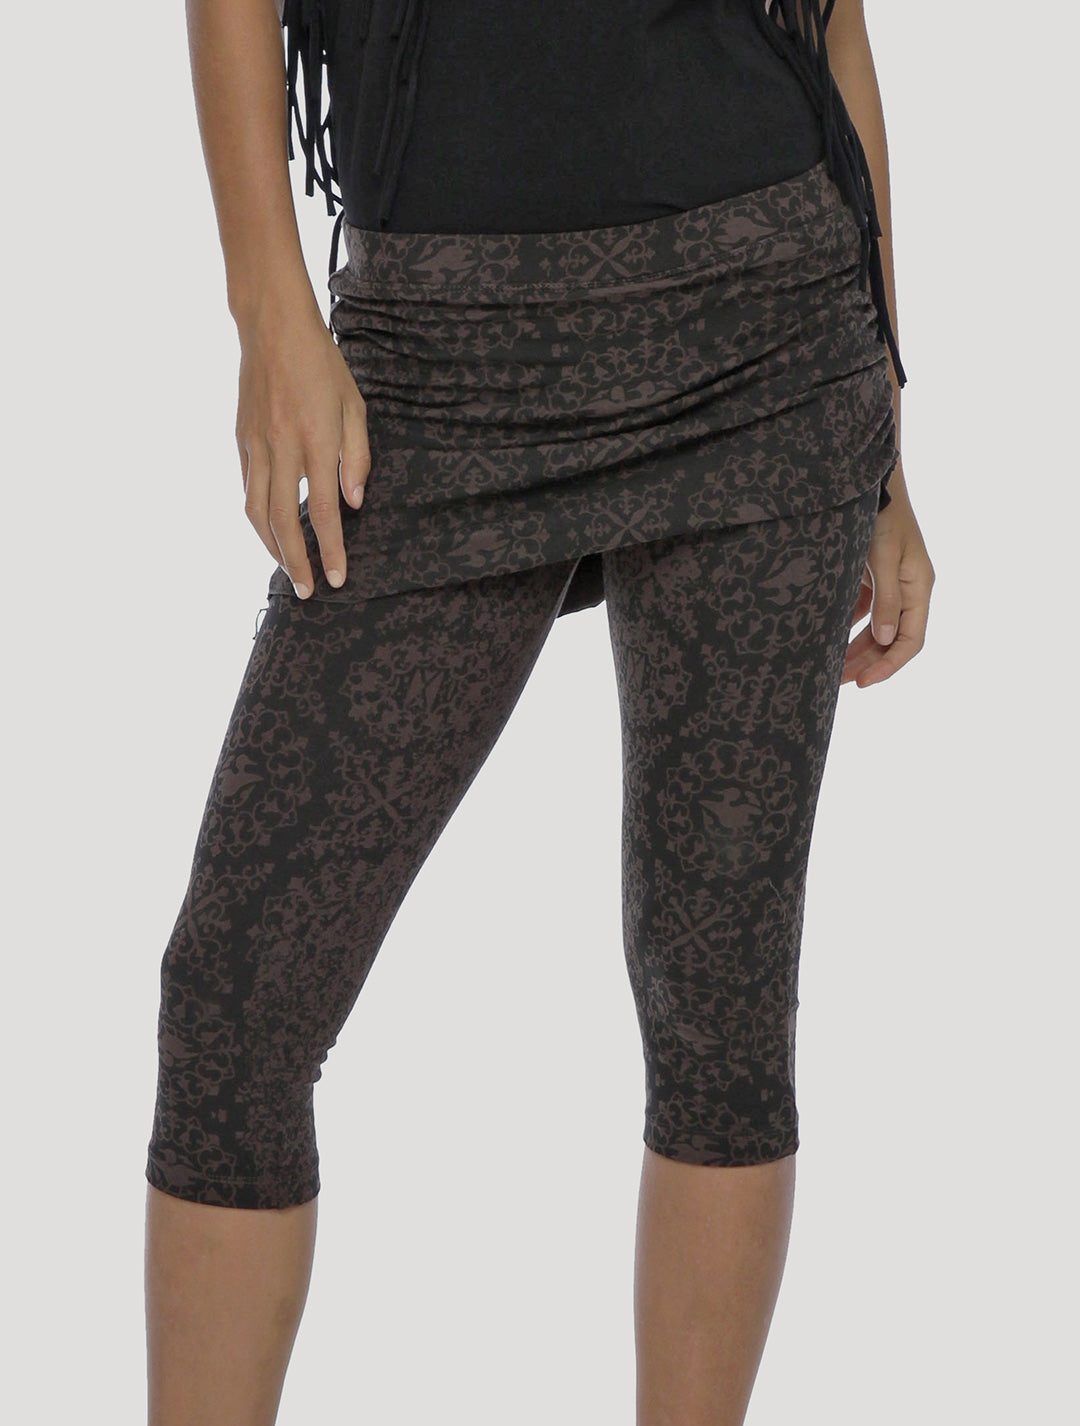 Isis The Goddess Skirted 3/4 Leggings - Psylo